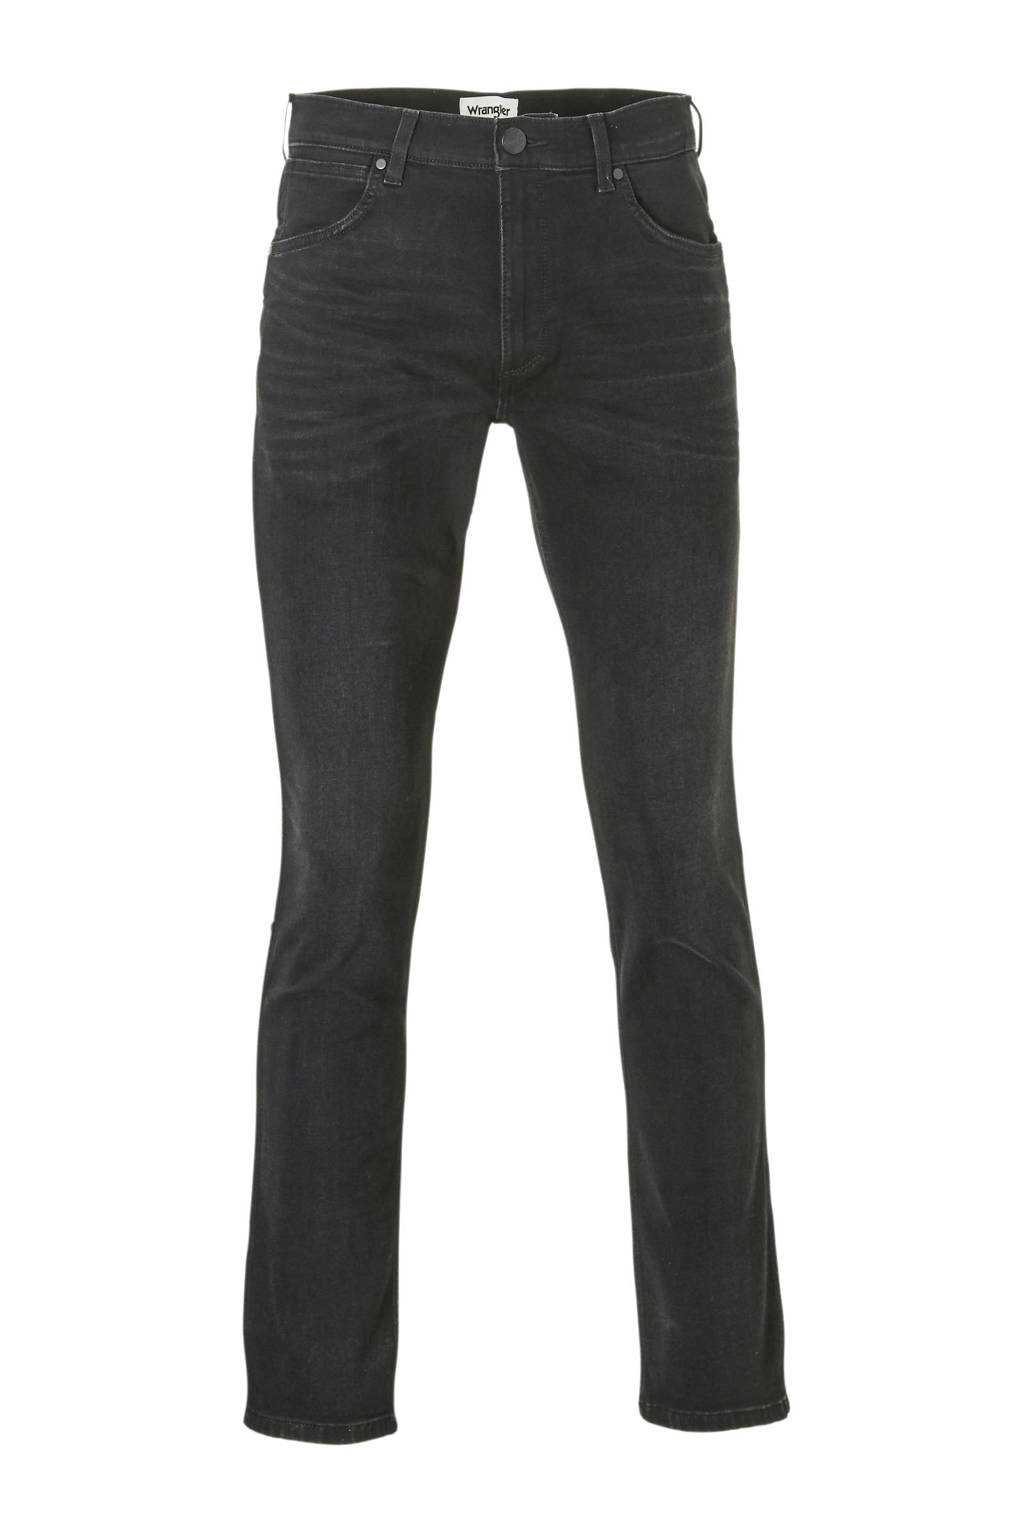 Wrangler straight fit jeans Greensboro, One Eyed Black